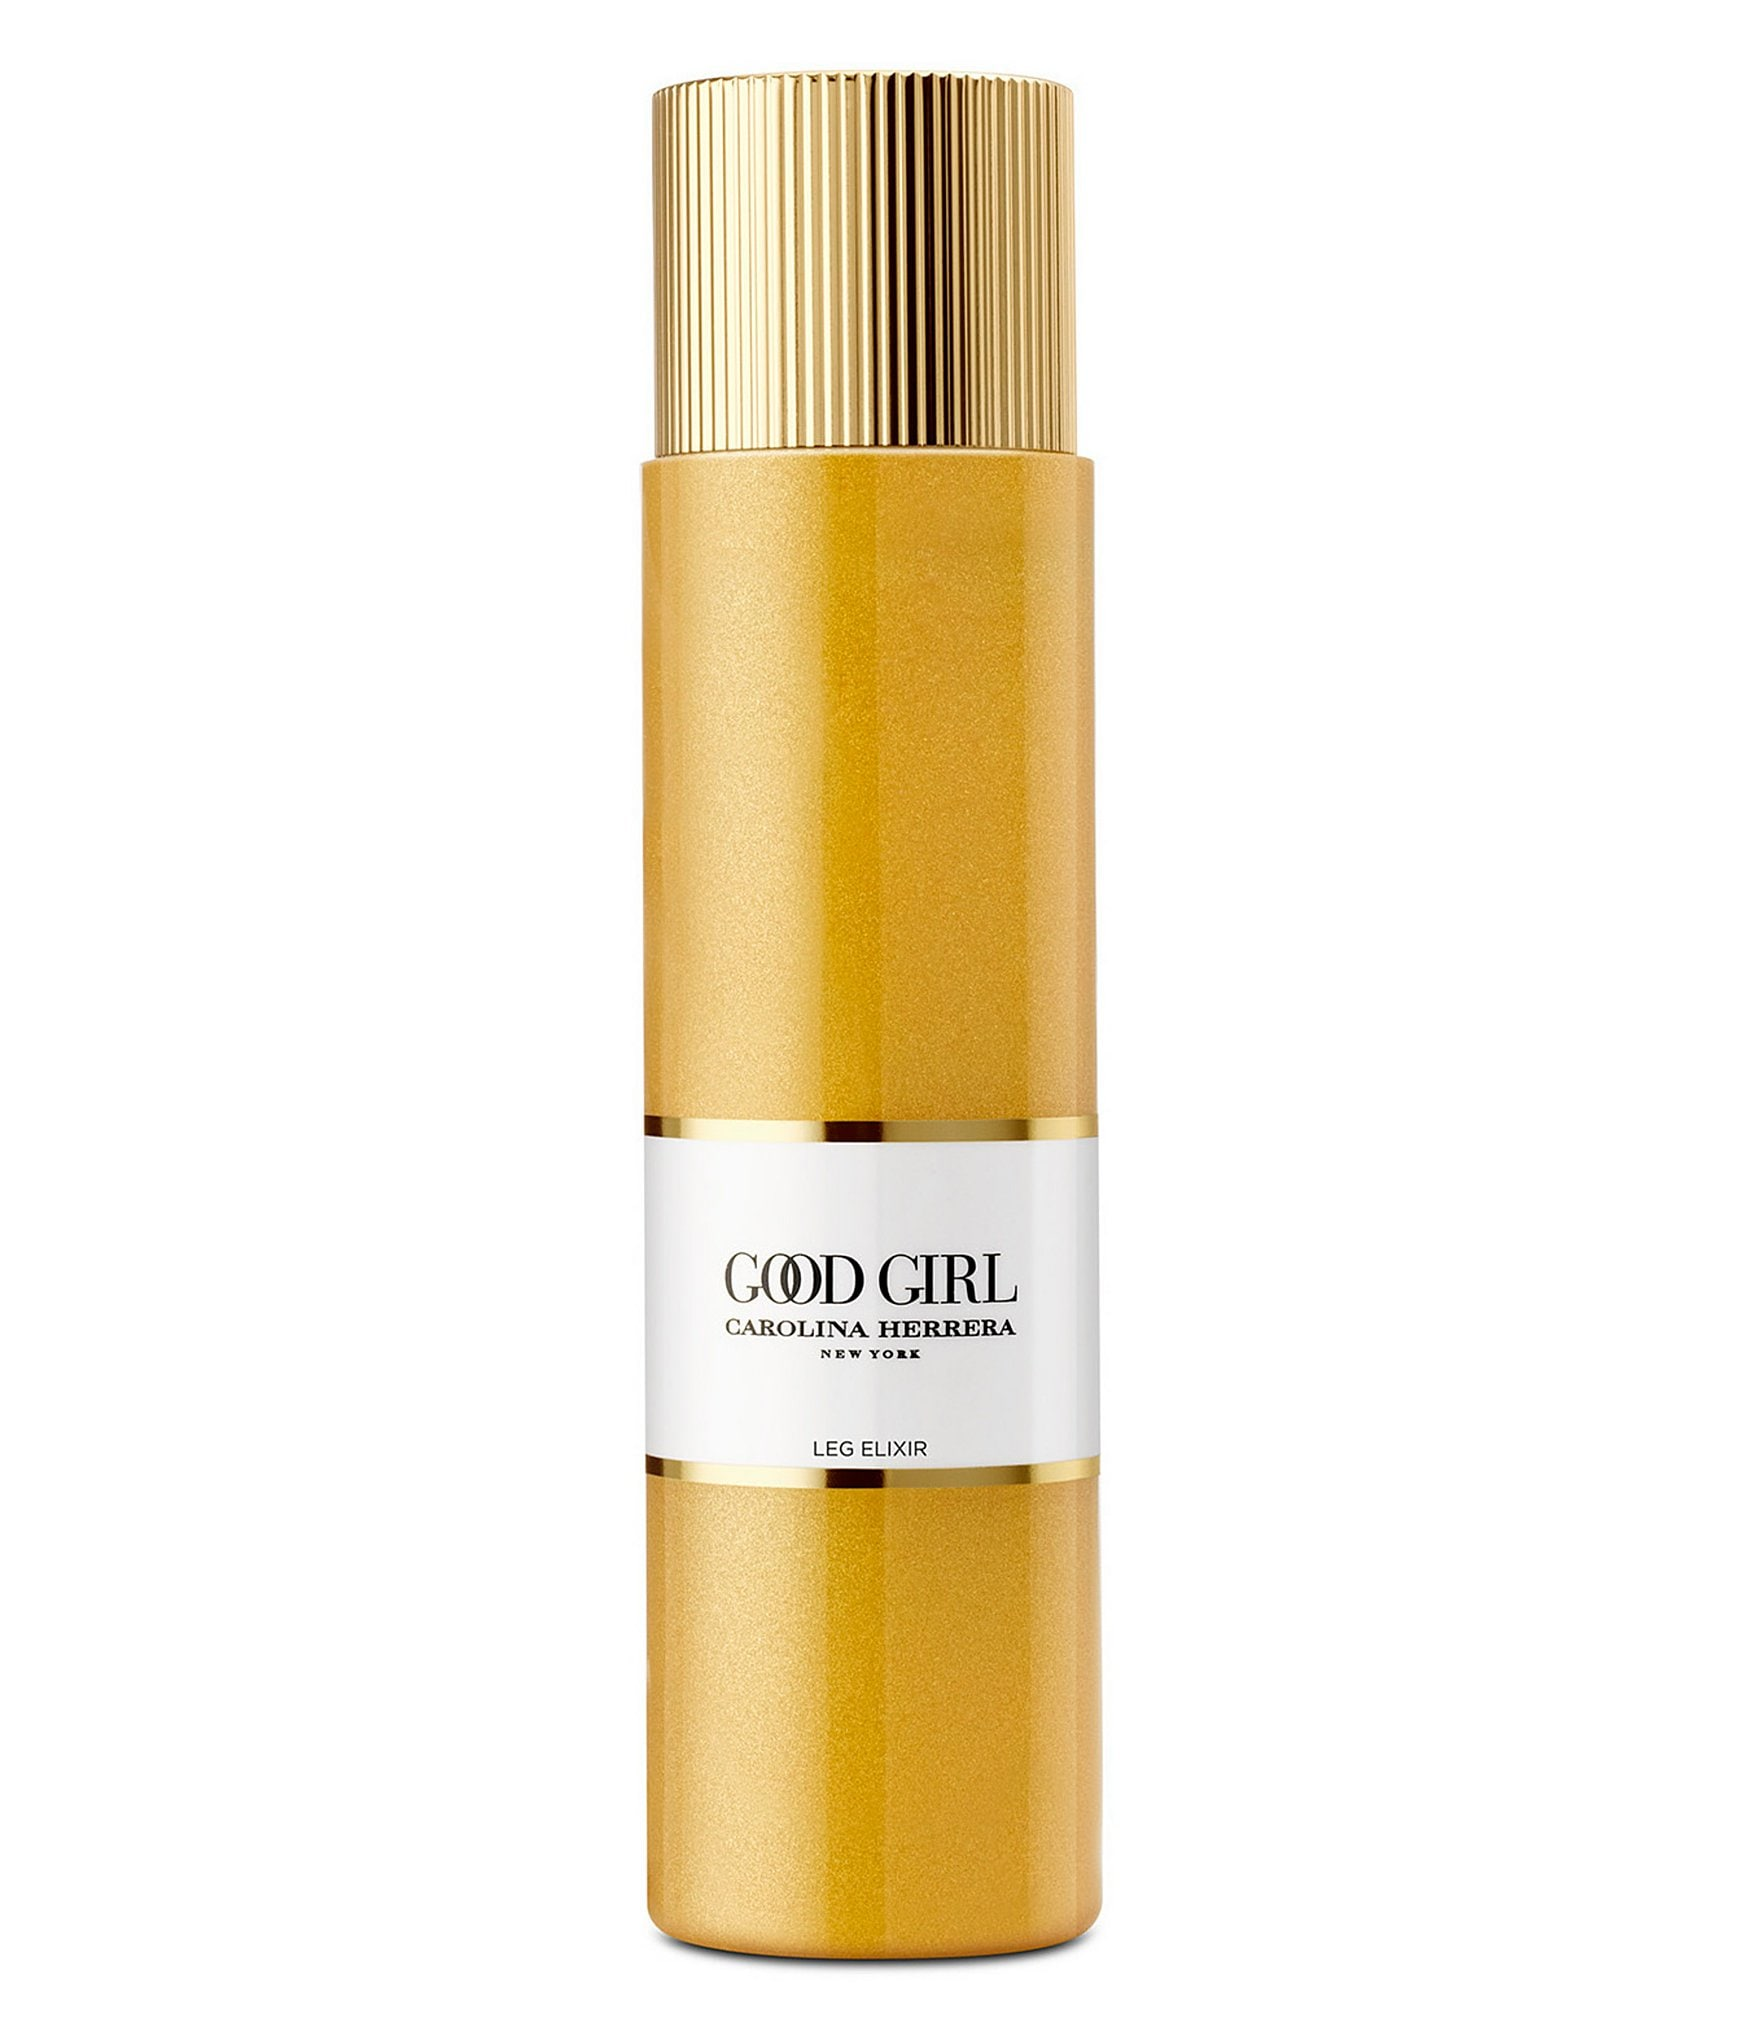 Carolina Herrera Cosmetics Skincare Beauty Dillards